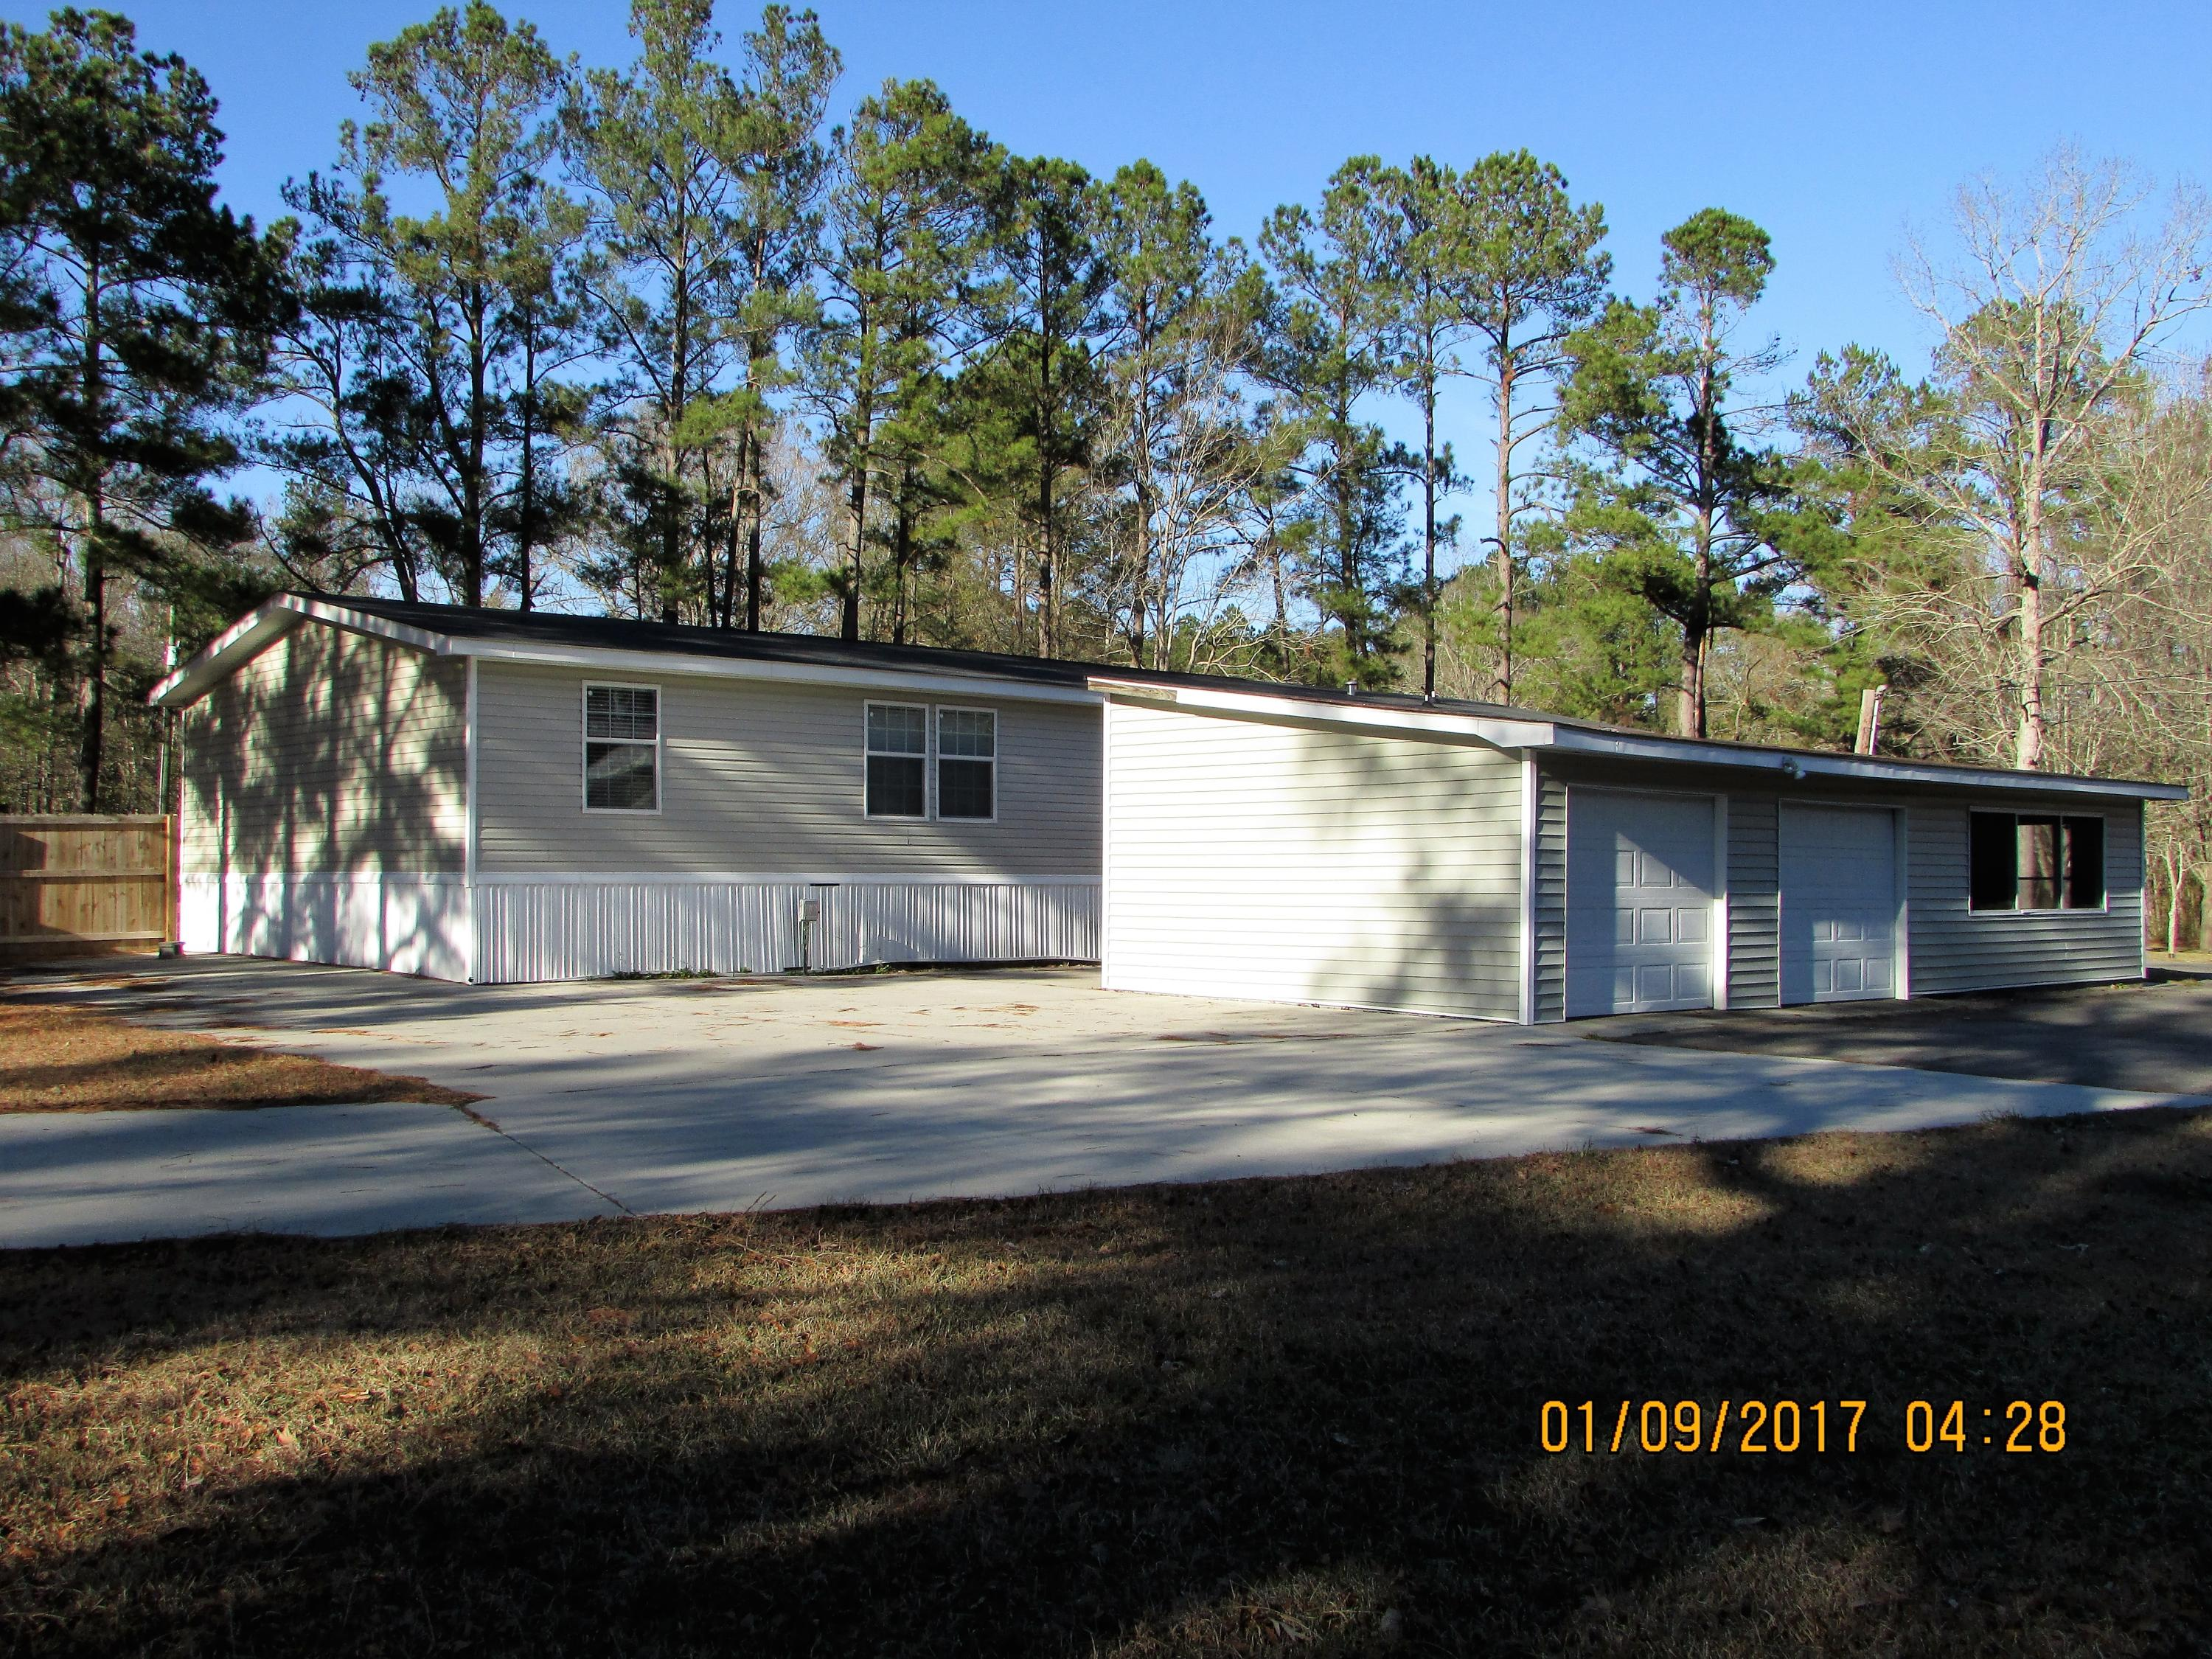 Photo of 111 New Hope Dr, Summerville, SC 29483